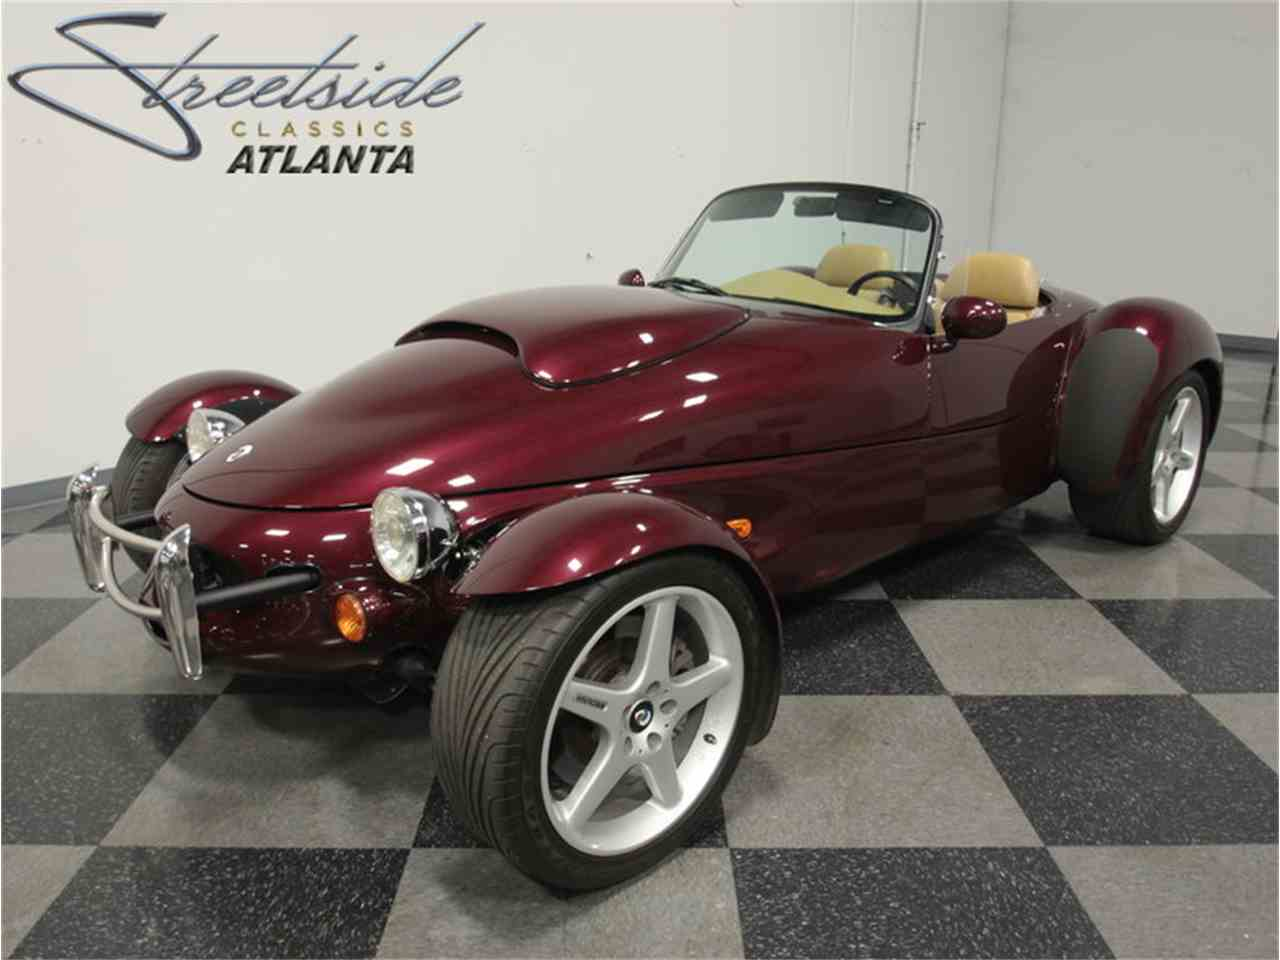 Large Picture of 1998 Panoz AIV Roadster Supercharged - $41,995.00 - JPDH